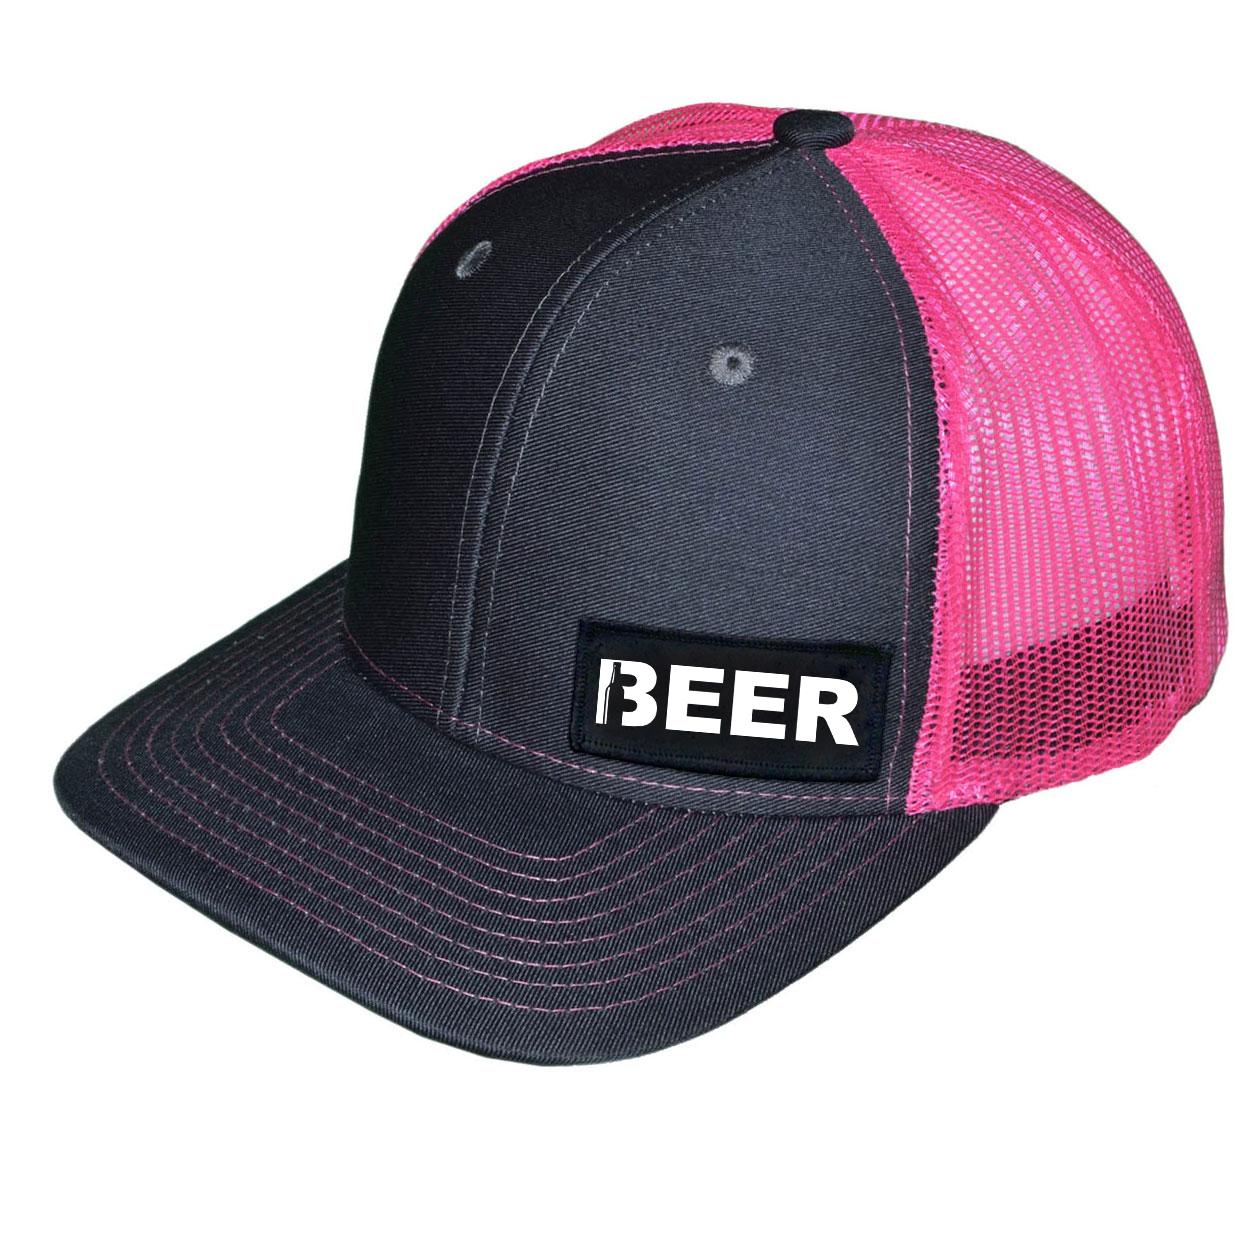 Beer Bottle Logo Night Out Woven Patch Snapback Trucker Hat Dark Gray/Neon Pink (White Logo)